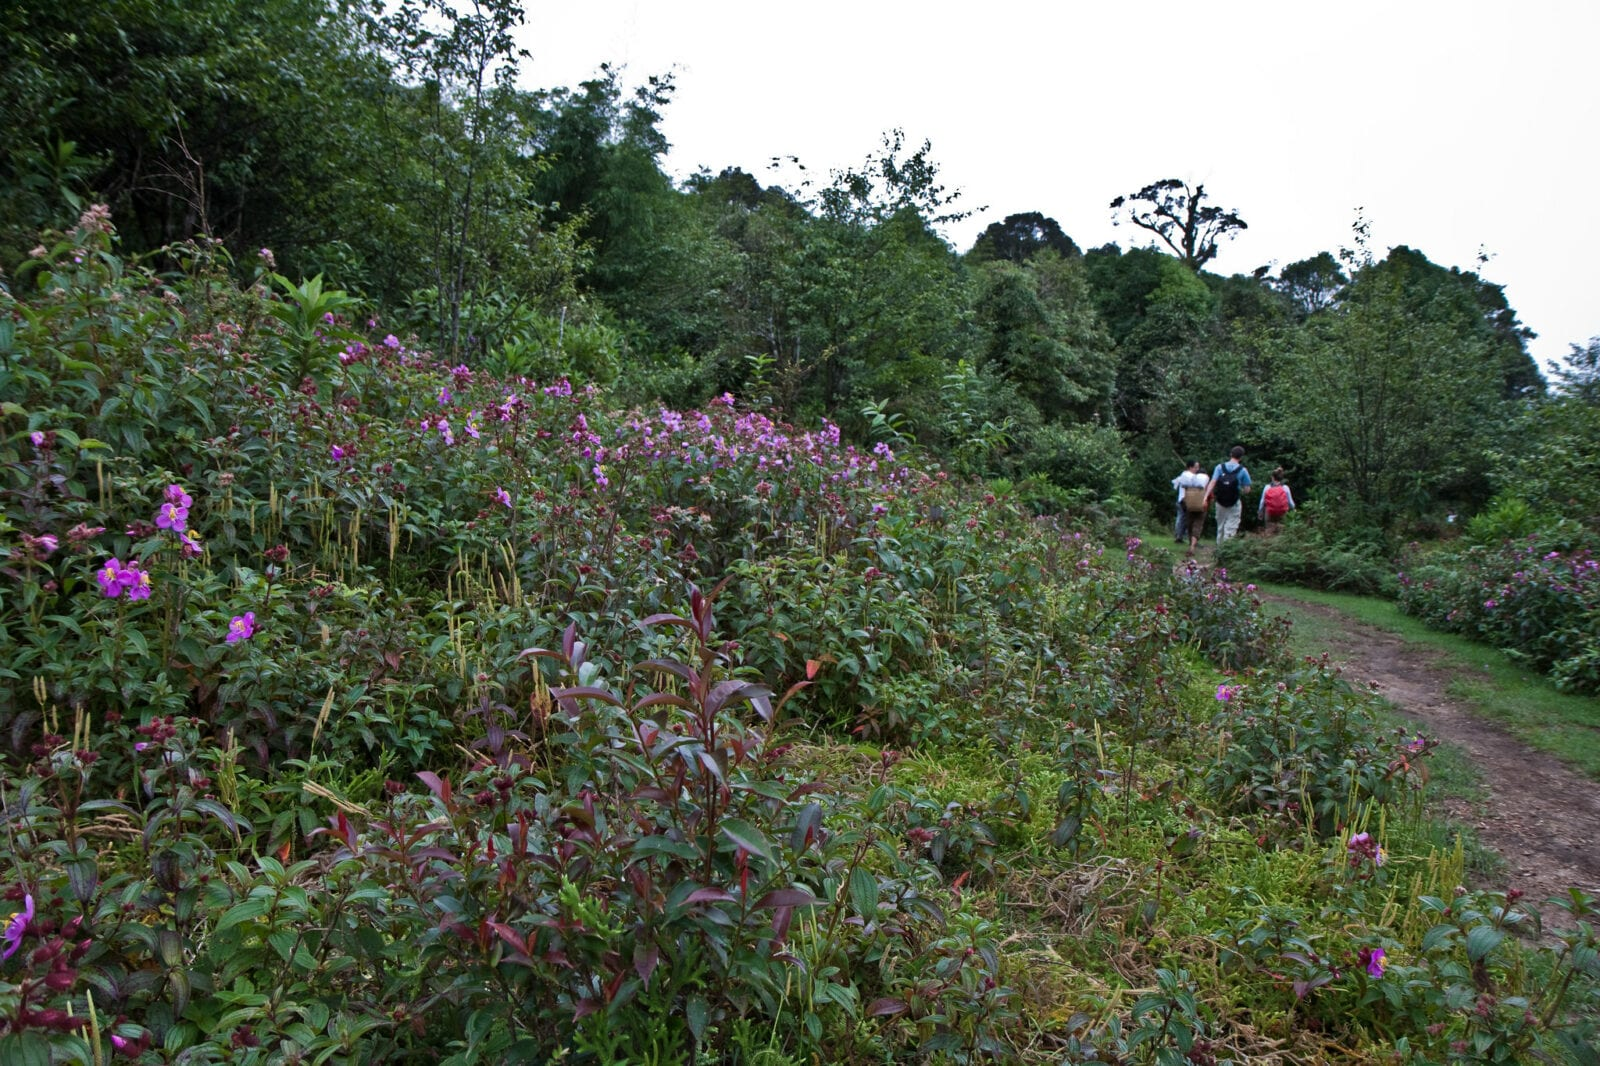 Image of the flora within the Hoang Lien National Park on a hike up Fansipan